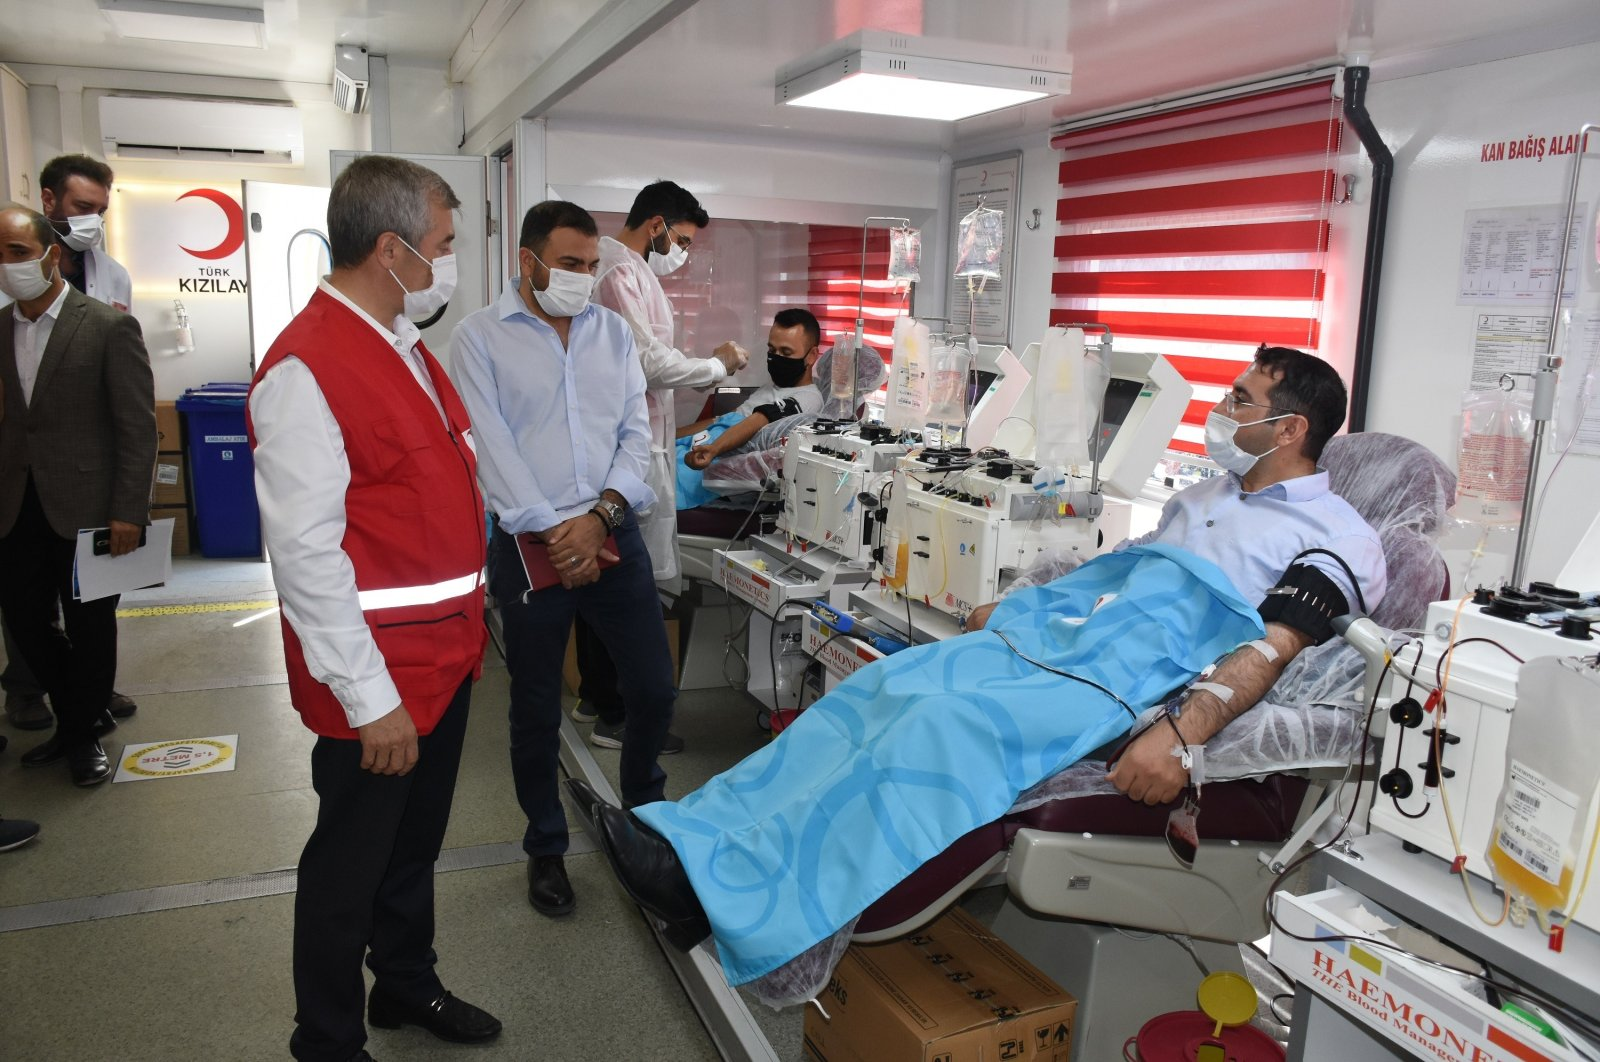 Two men donate plasma at a Turkish Red Crescent center in Gaziantep, southern Turkey, Sept. 11, 2020. (İHA Photo)